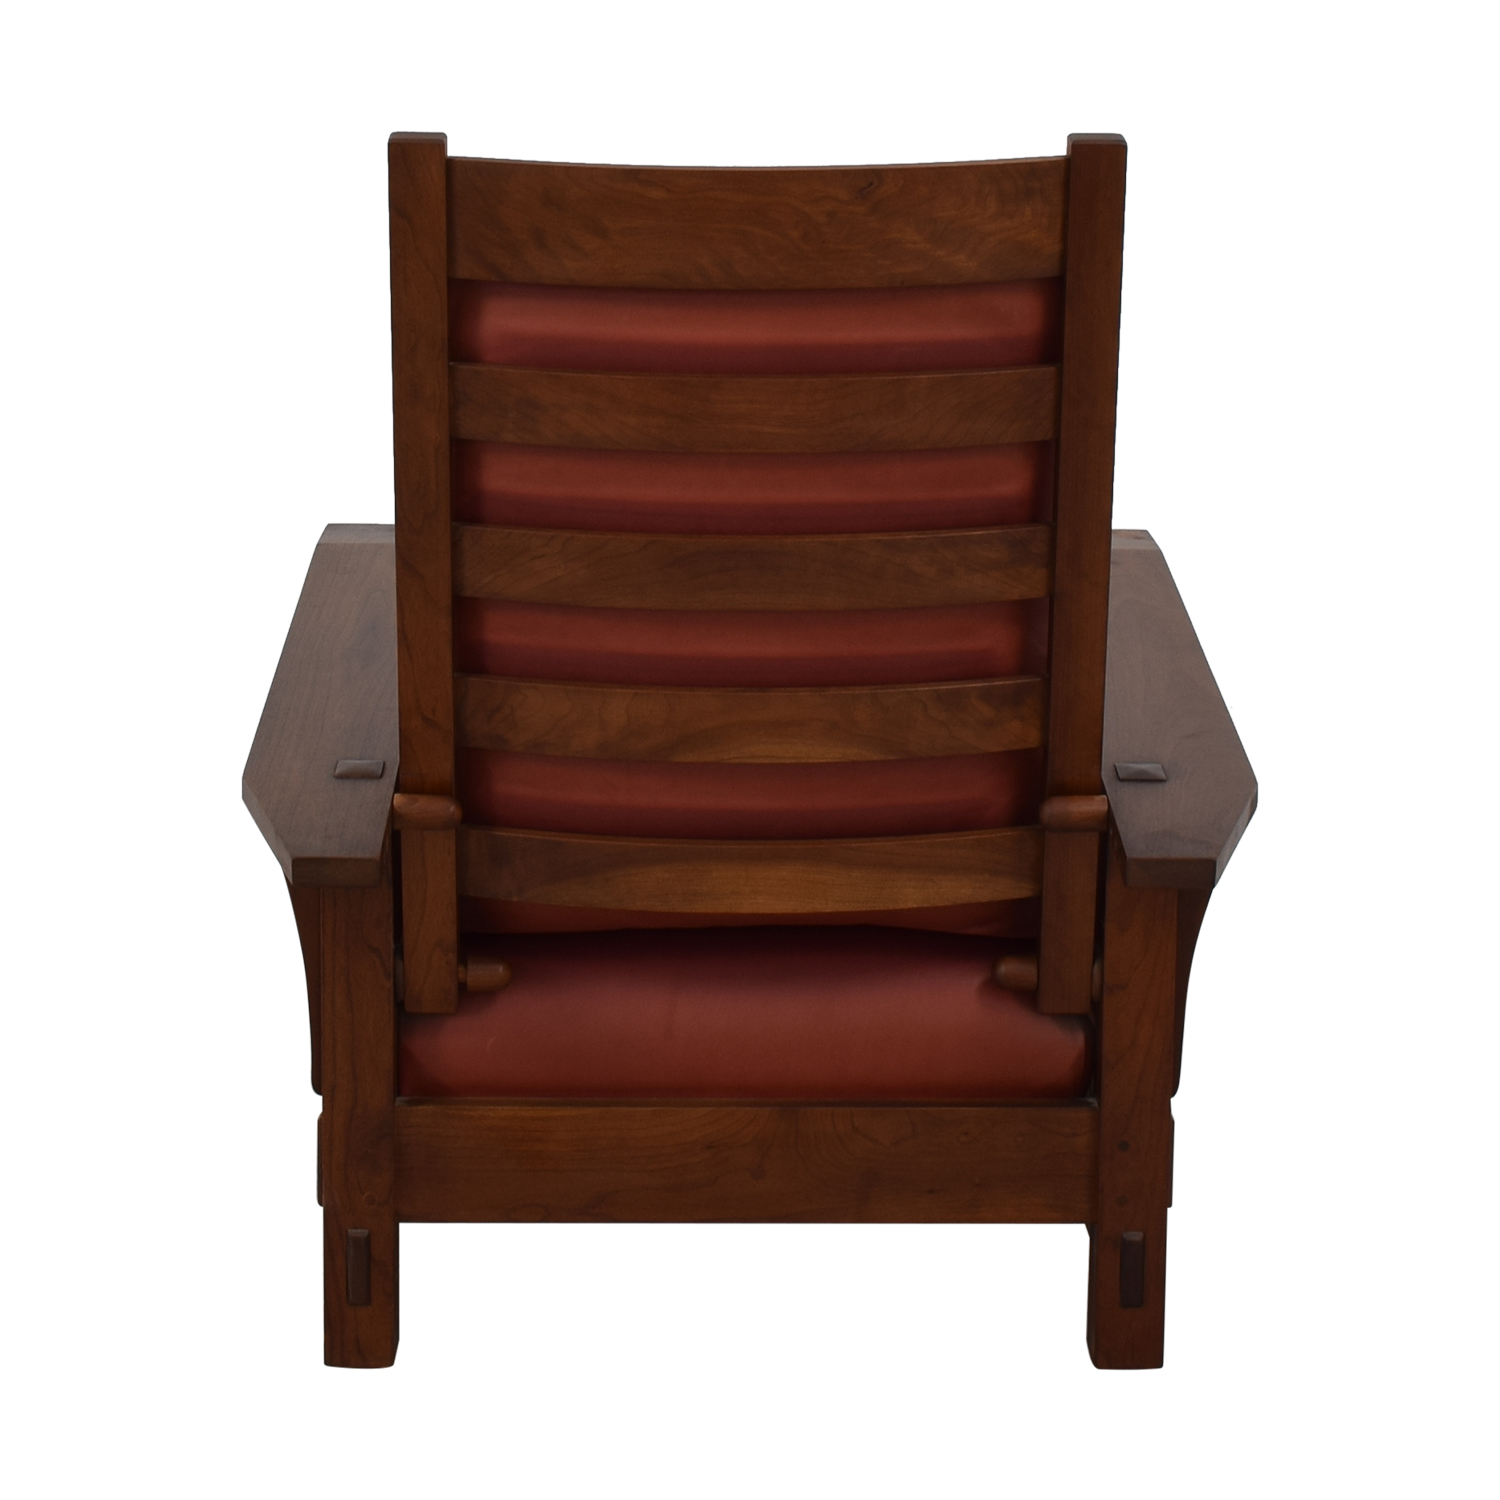 Stickley Furniture Stickley Spindle Morris Chair dimensions